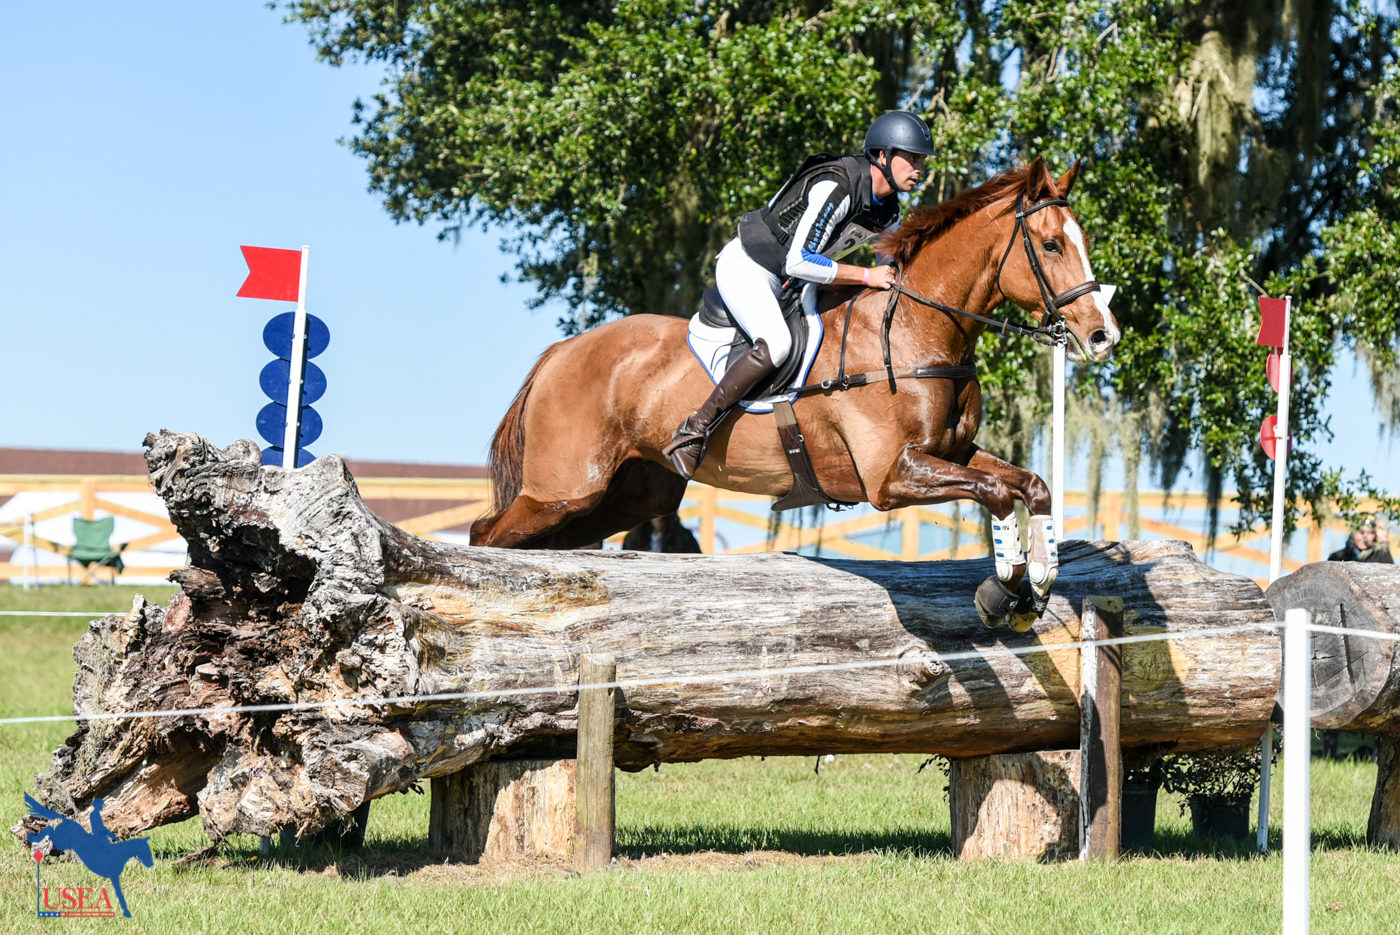 CCI3* - 6th - Alexis Helffrich and London Town